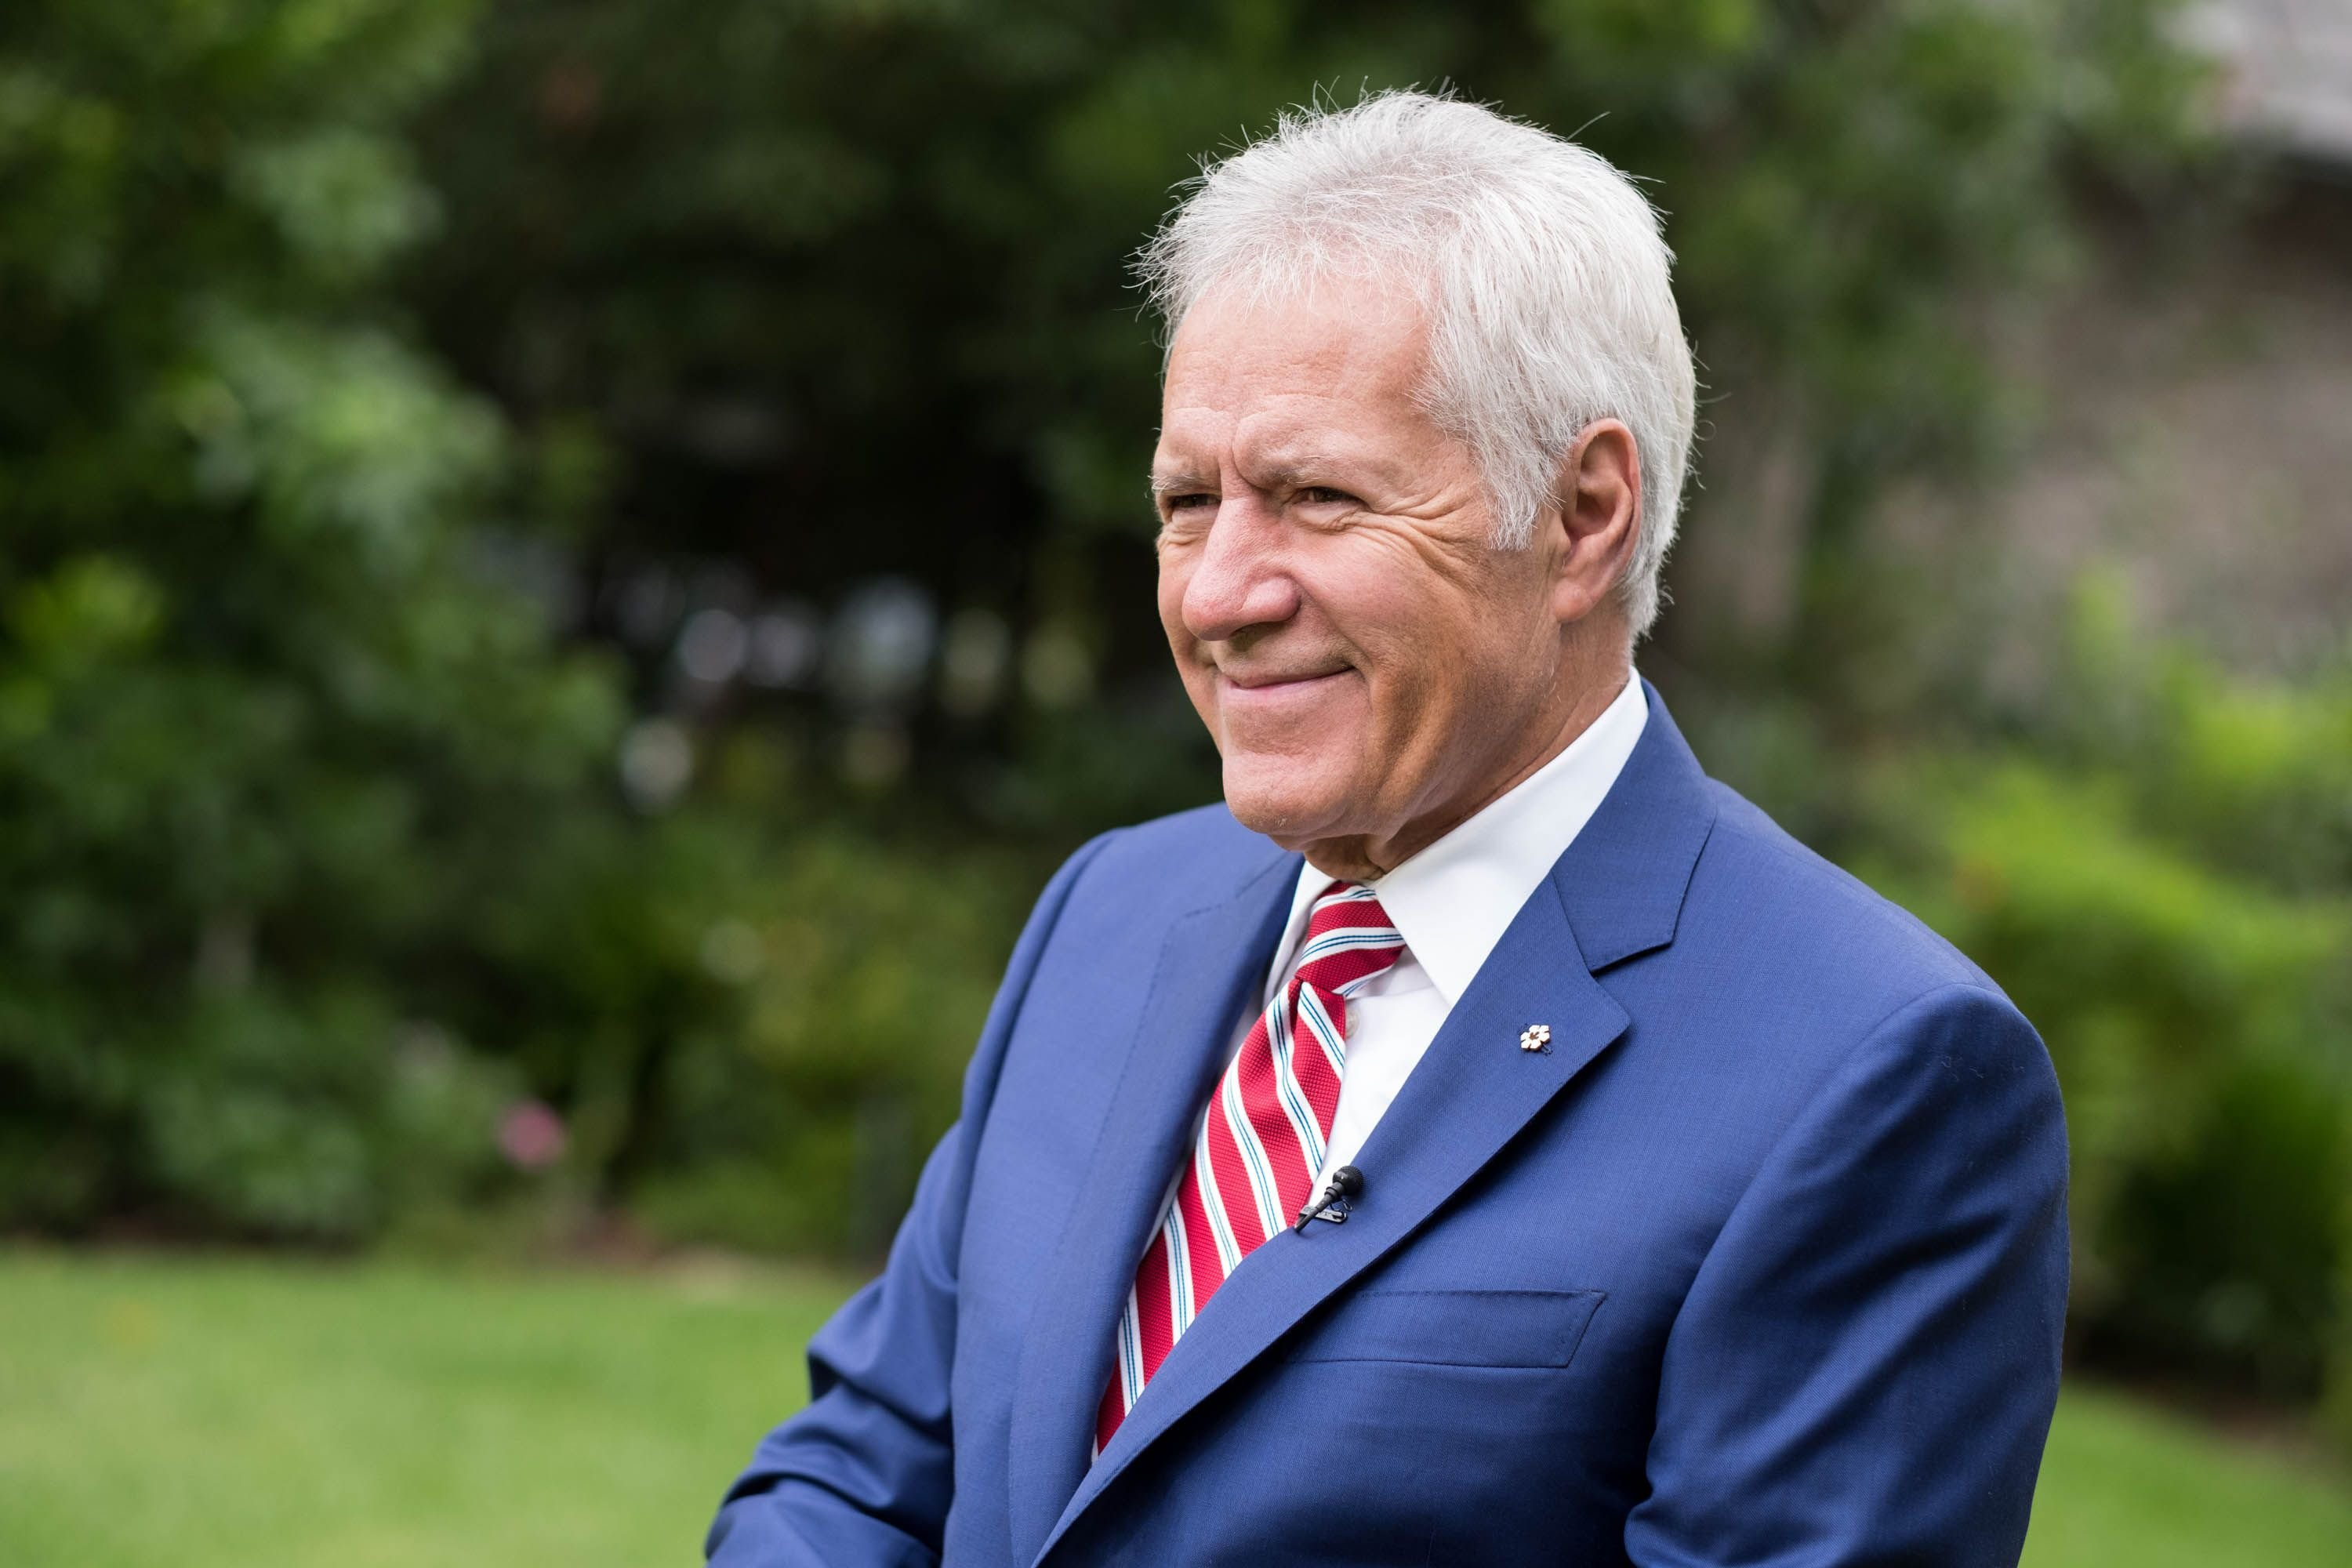 Alex Trebek at the 150th anniversary of Canada's Confederation at the Official Residence of Canada on June 30, 2017 | Photo: Getty Images